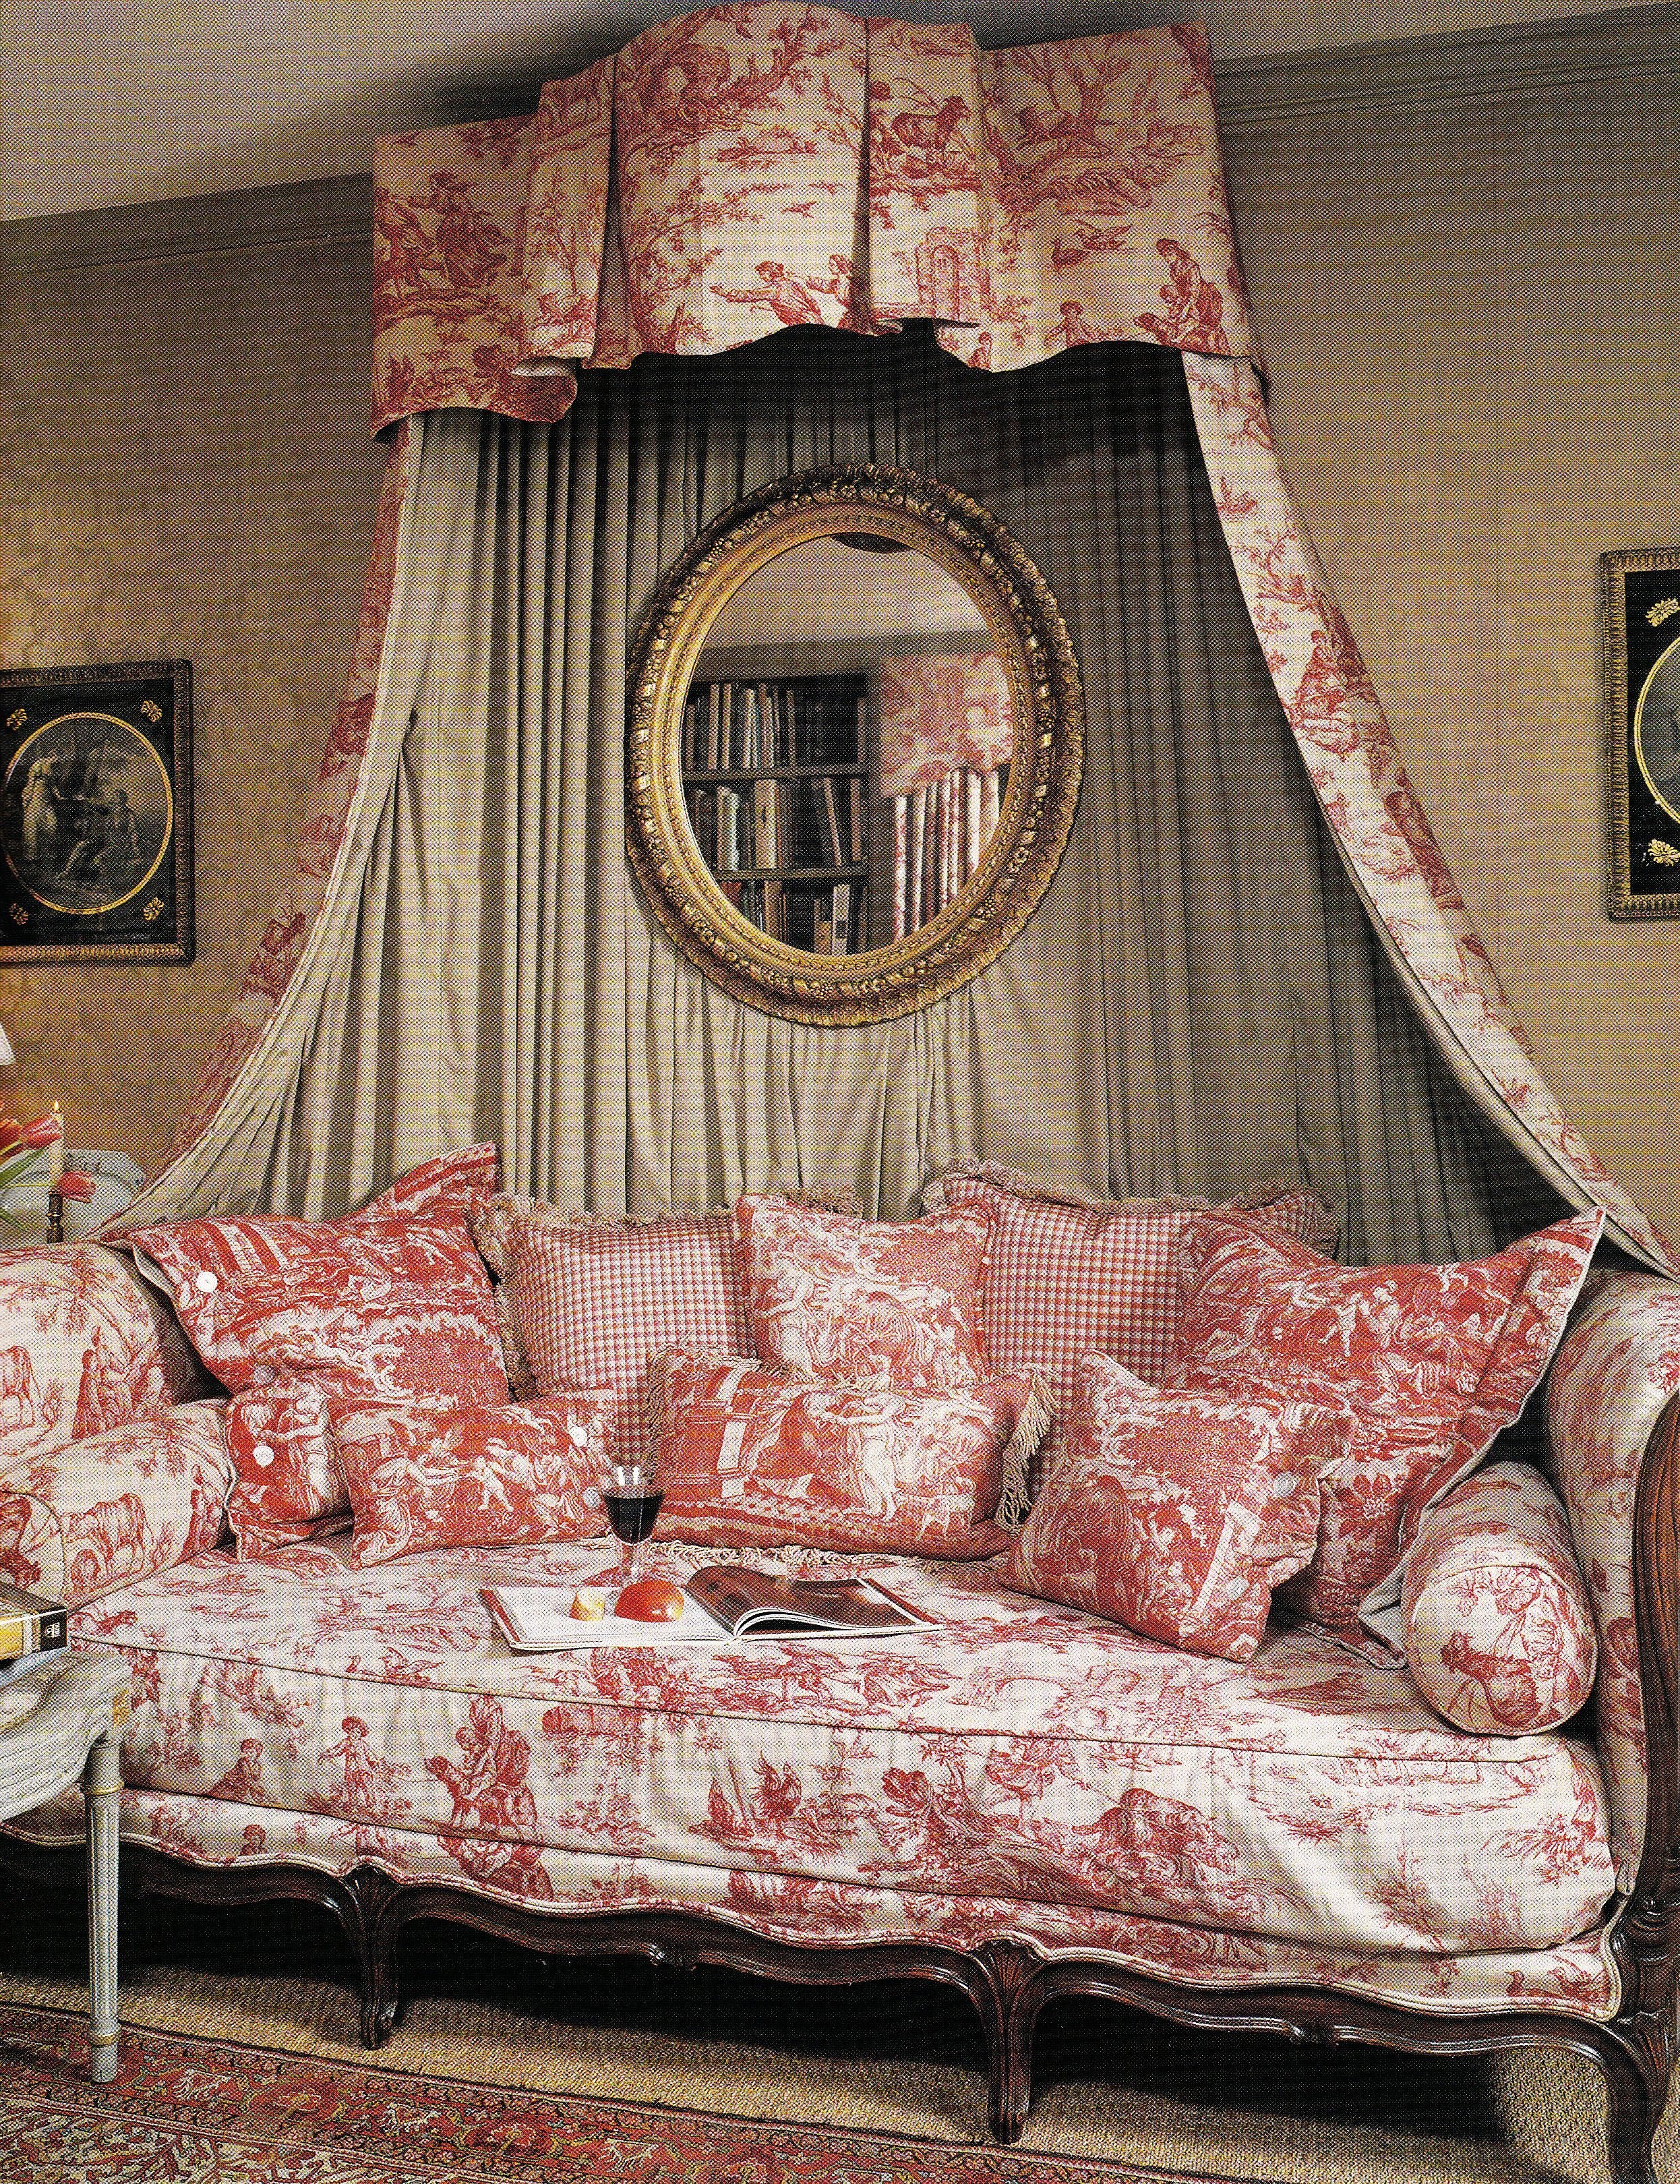 French Country bedroom...lovely toile bedding toile